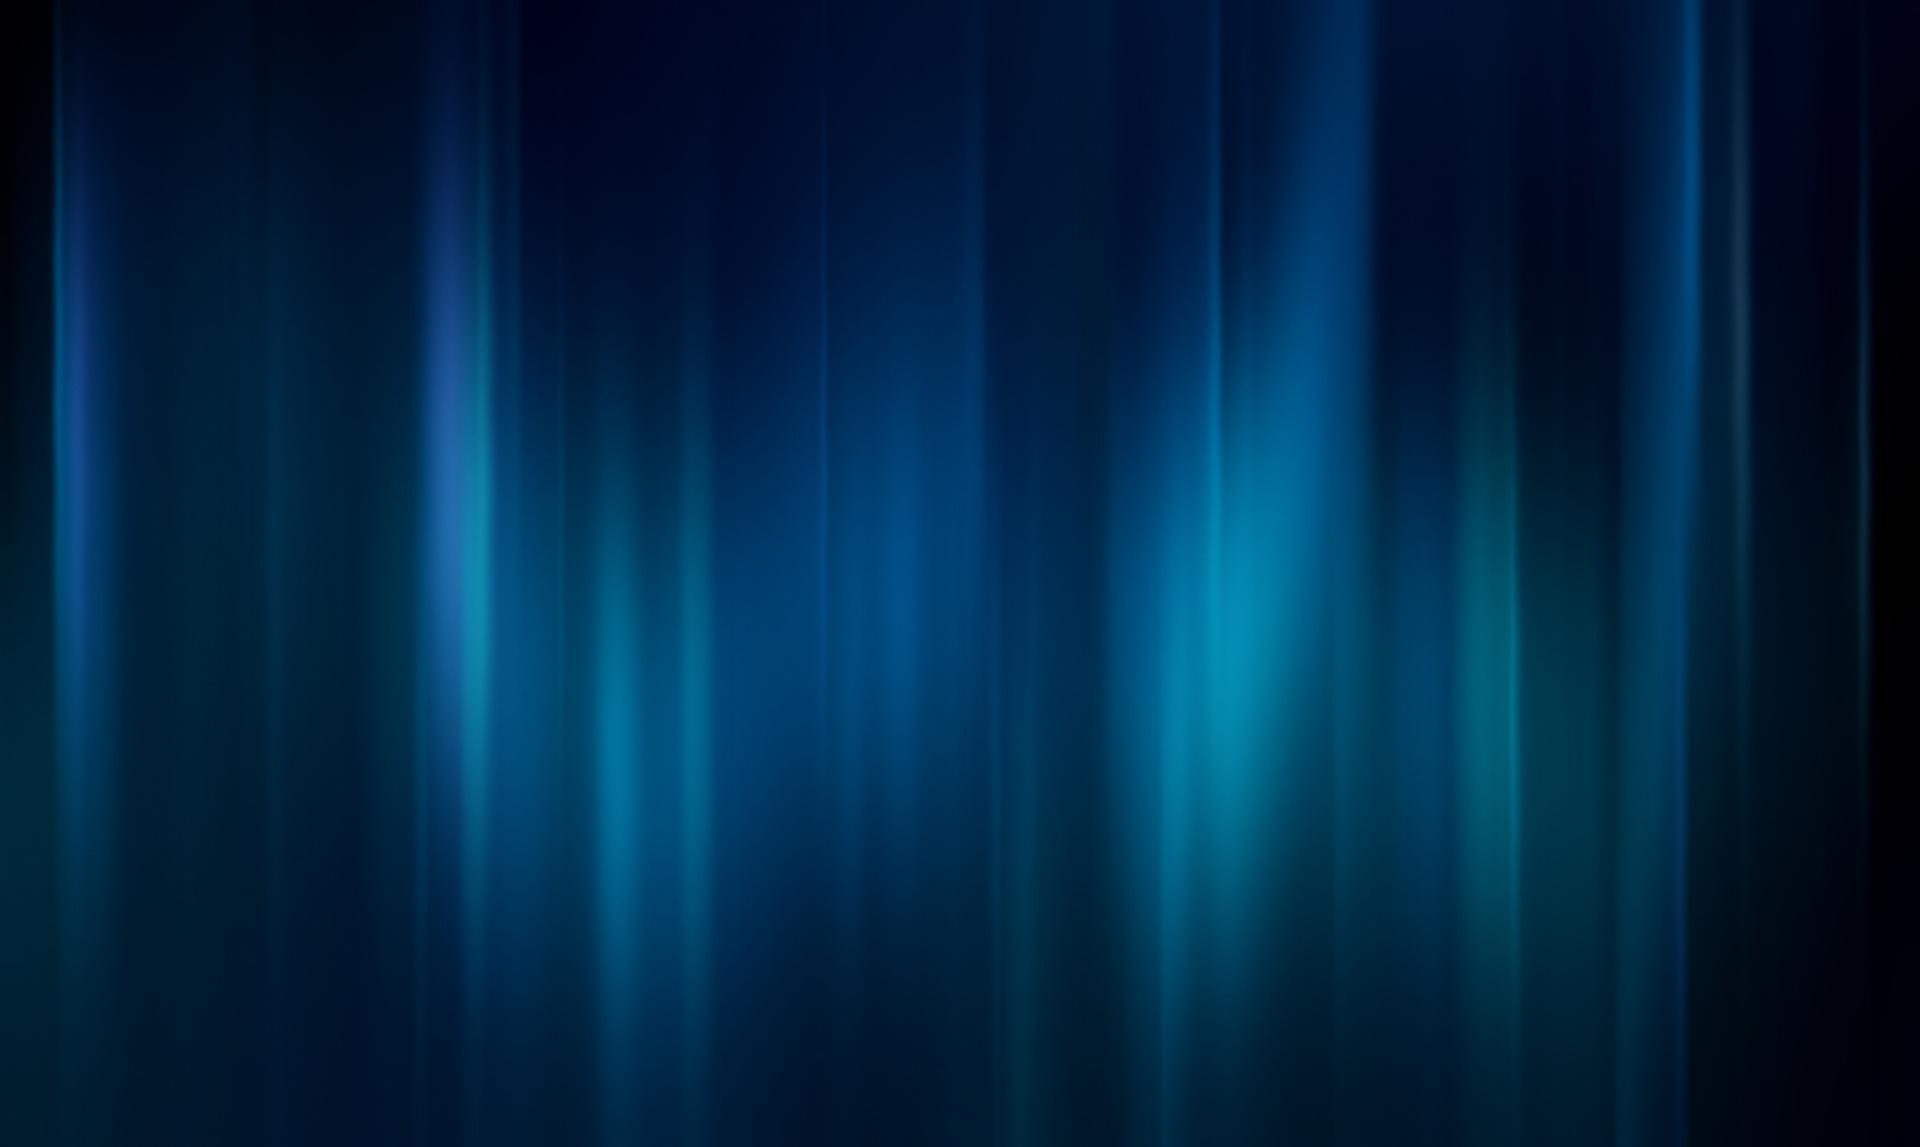 Blue blurry stripes wallpapers HD quality